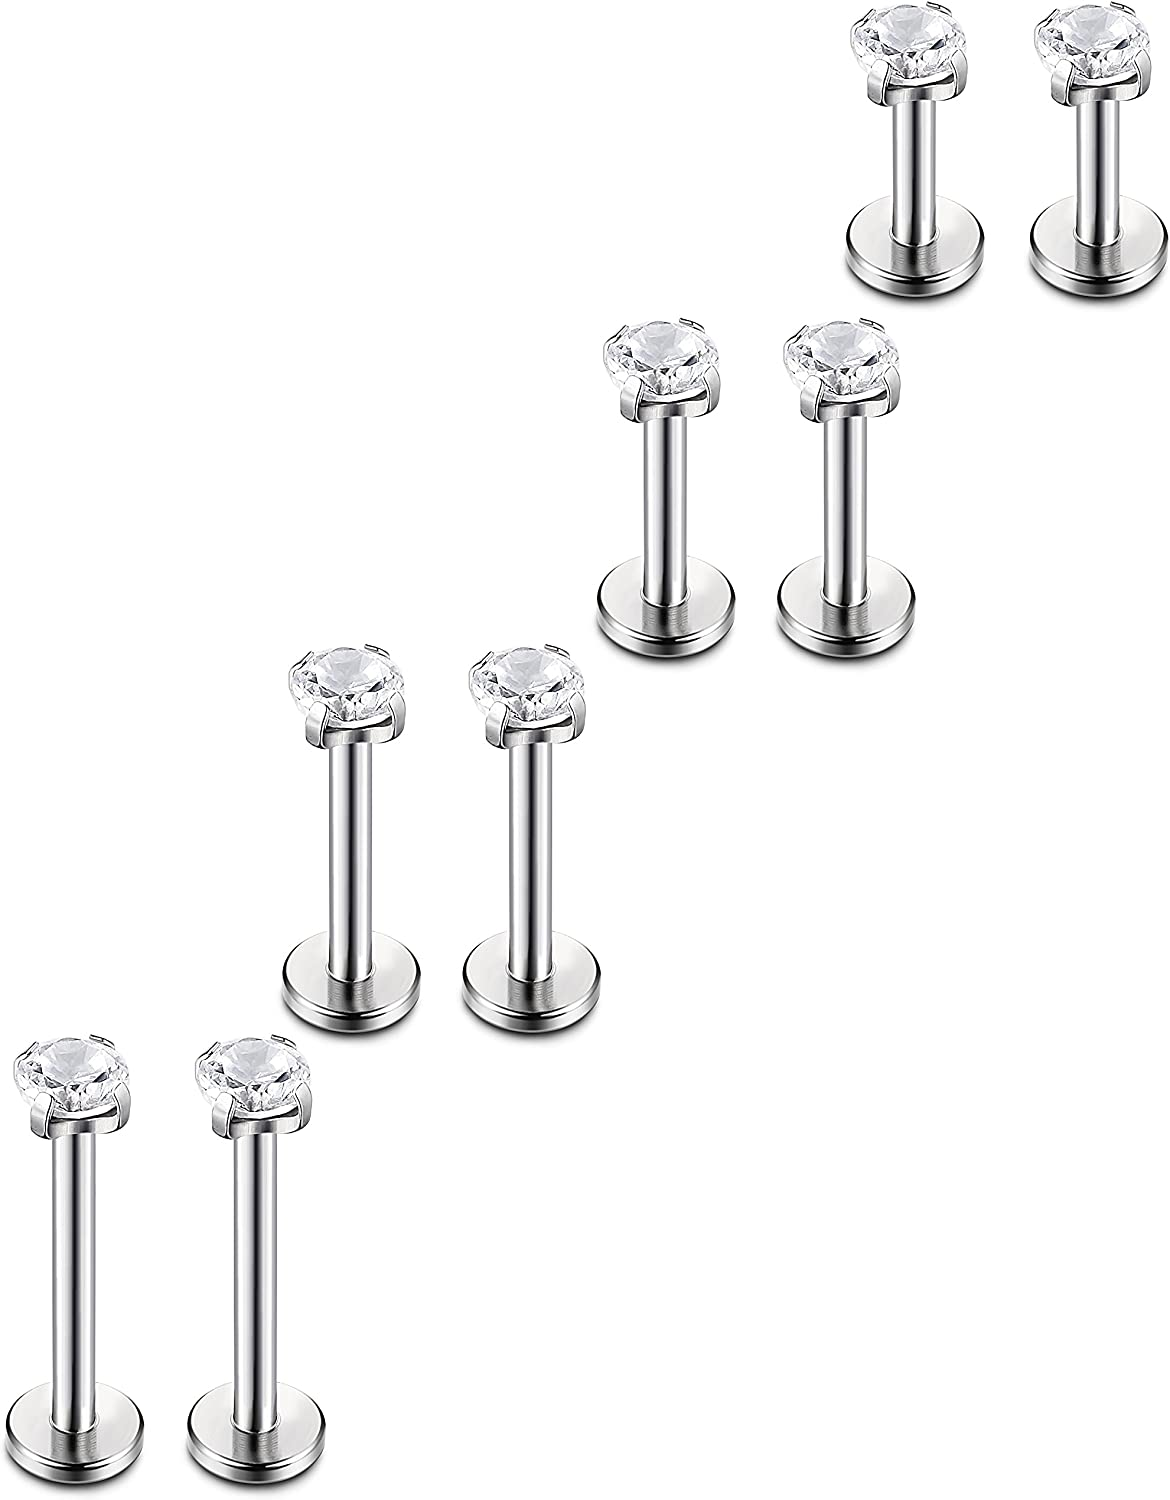 Beauty products ORAZIO 4-8 Pcs 18G Stainless Steel Nose Rings Bombing new work Lip Piercing Studs